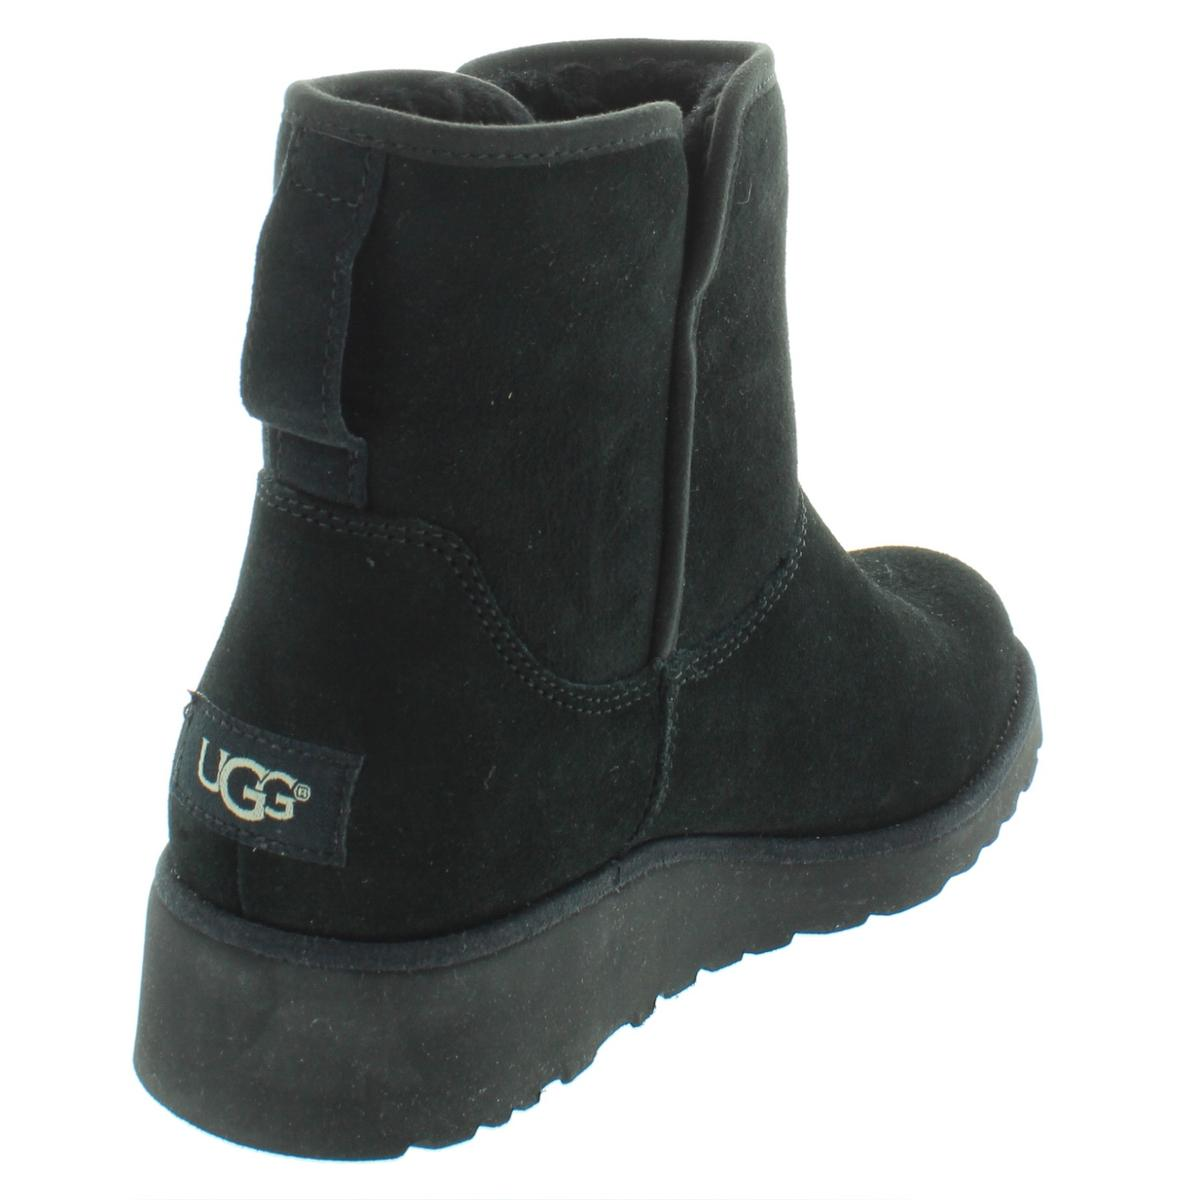 5587fddf4019 Details about Ugg Womens Kristin Black Suede Wool Ankle Boots Shoes 7.5  Medium (B